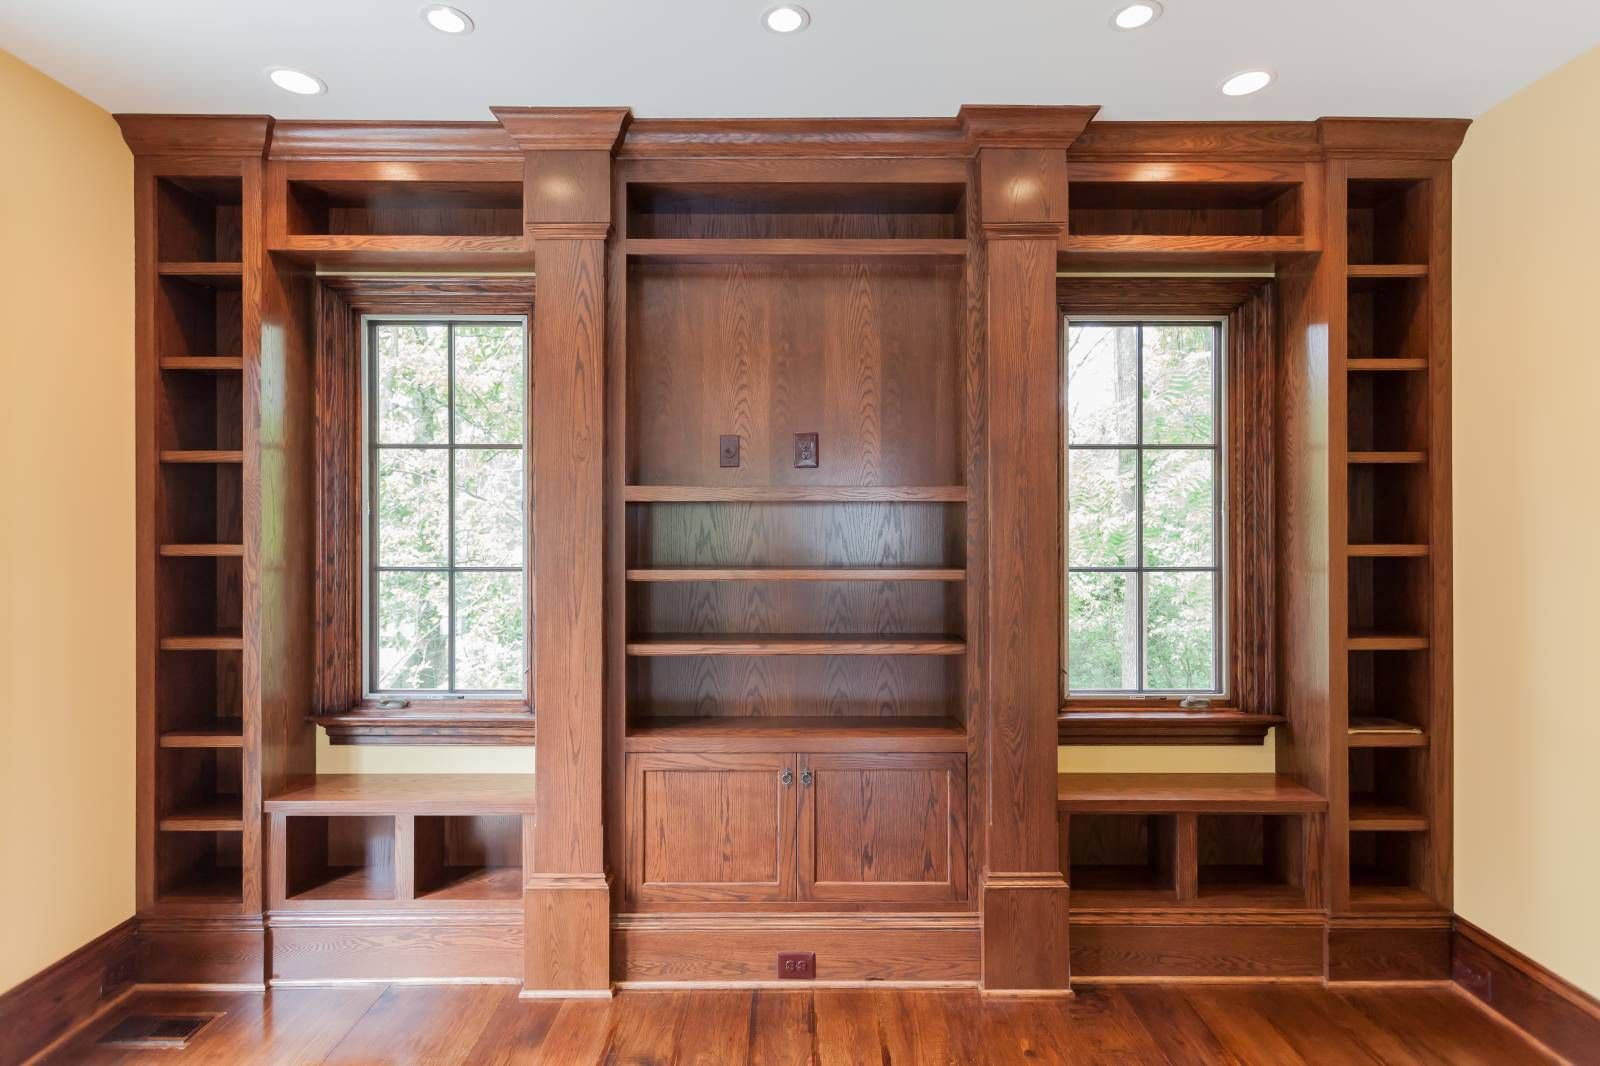 Stained wood custom built in with window seats, bookcases ...